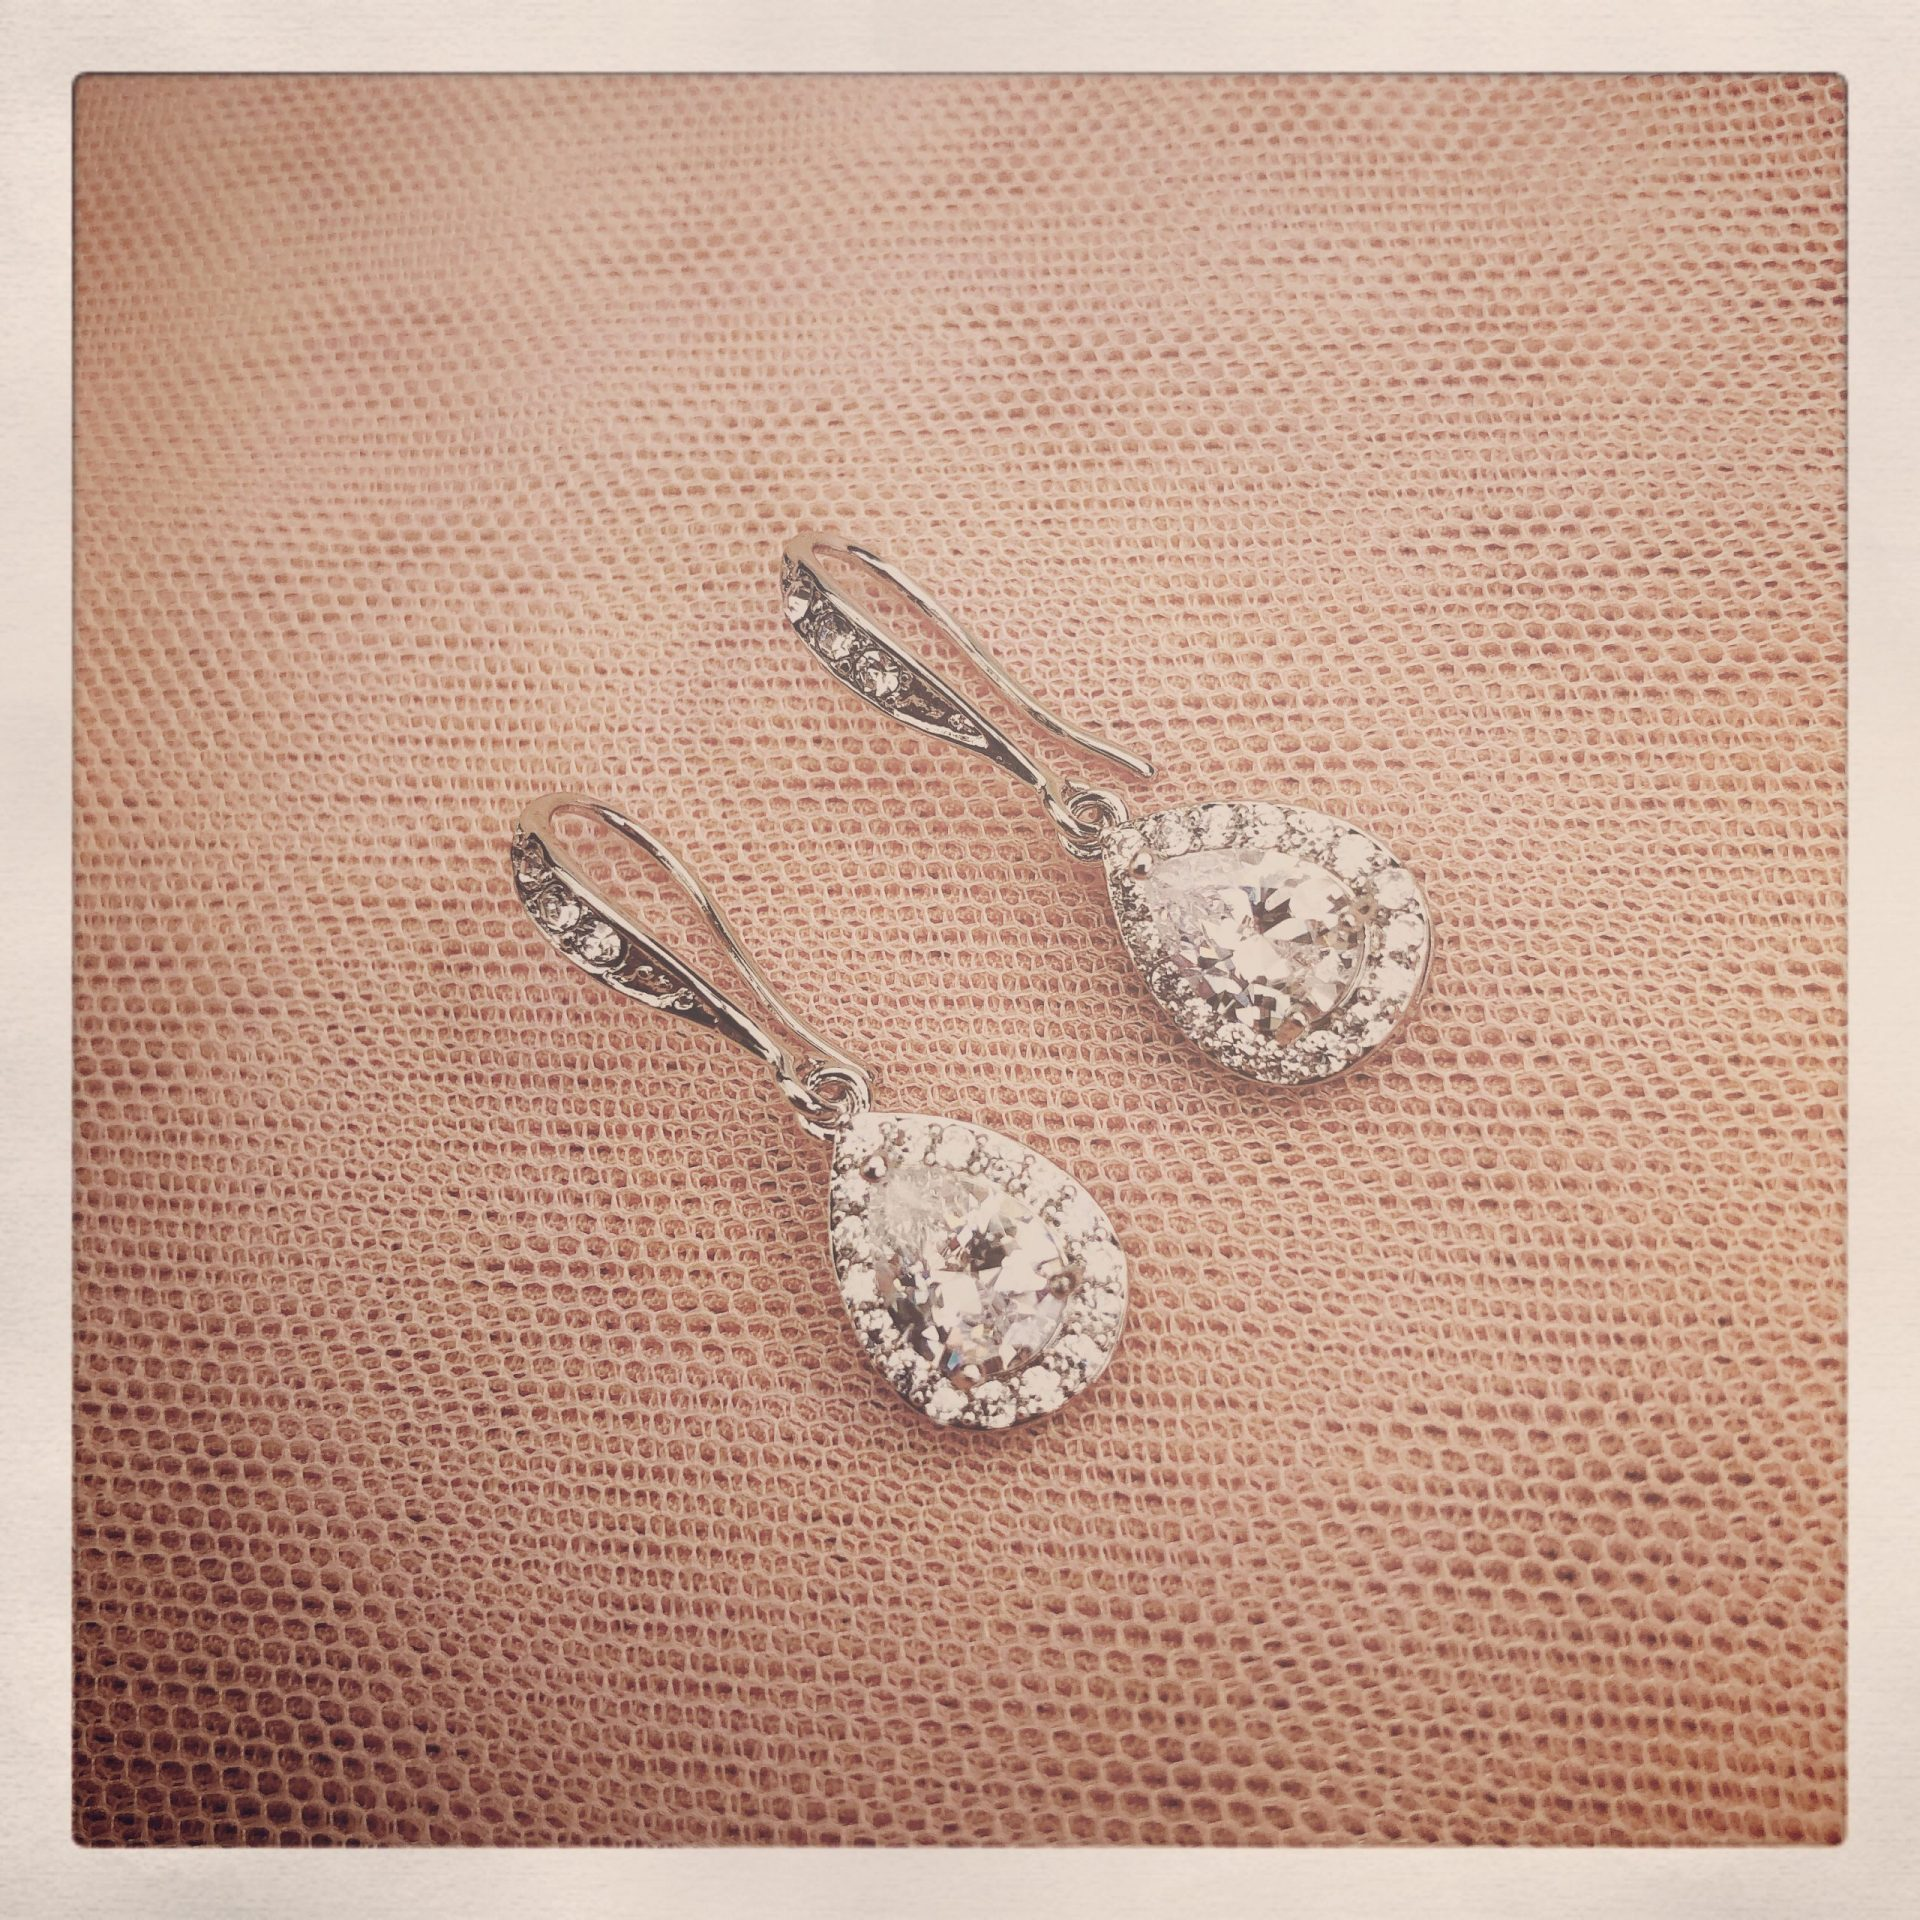 17. Felicity in Silver – Earrings